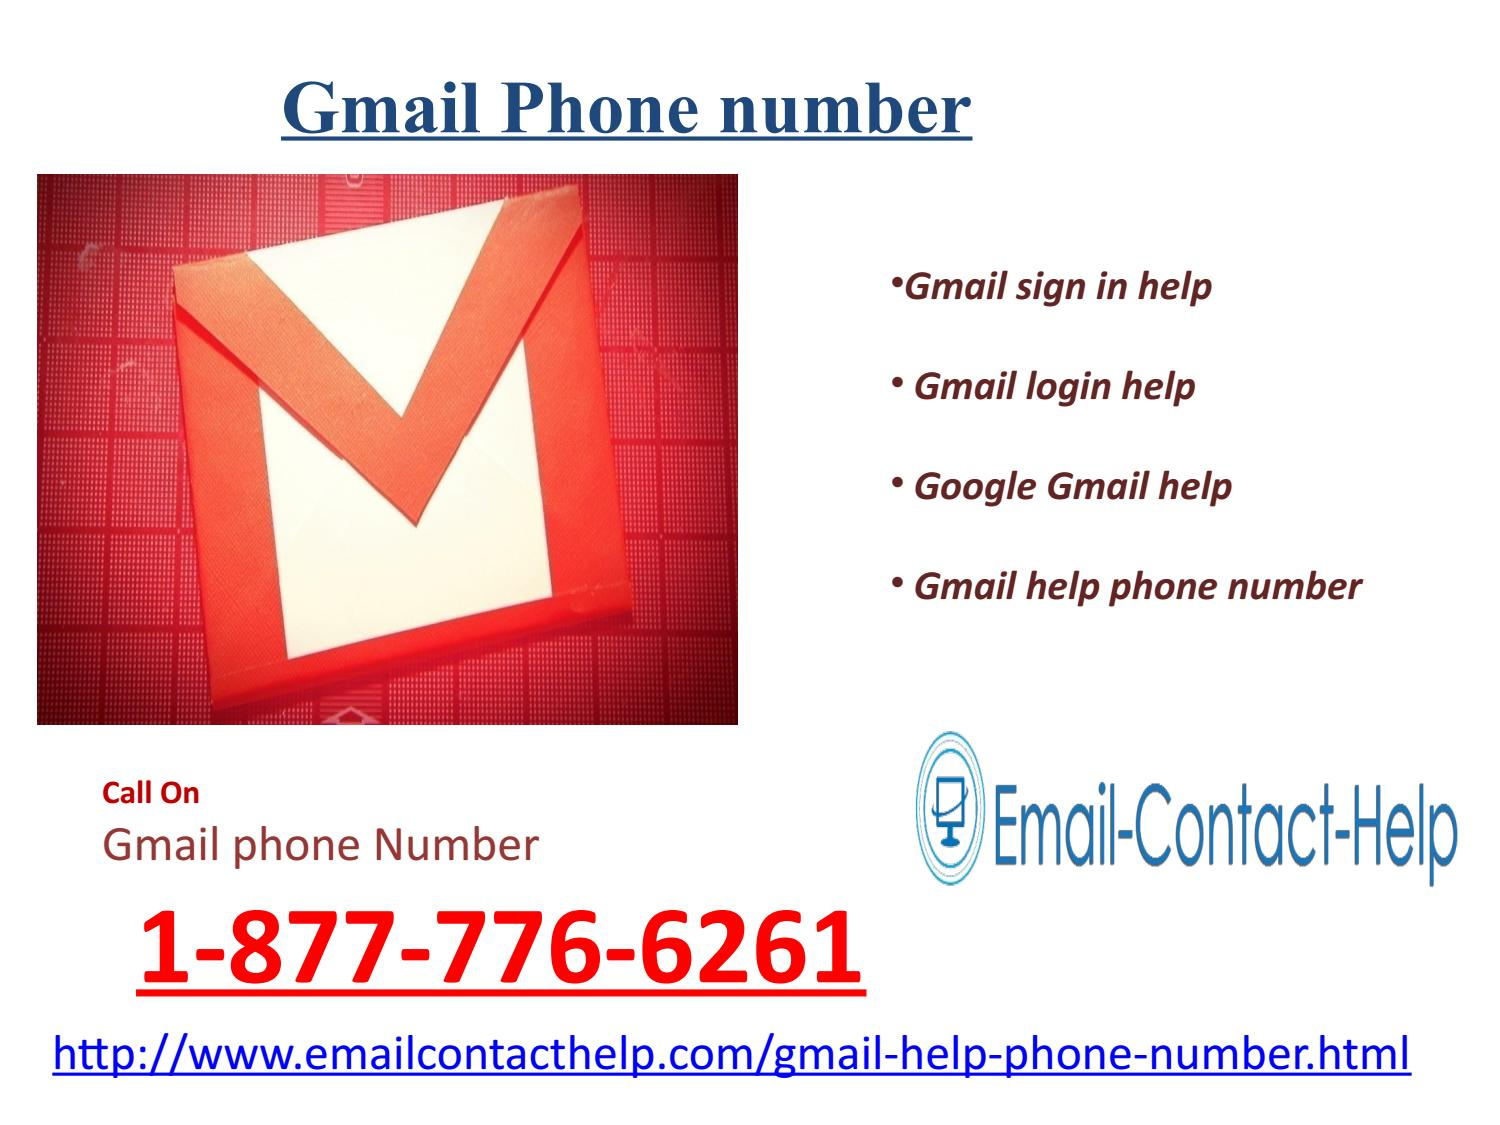 gmail helpline at @1-877-776-6261 with expert help by bphilip74902